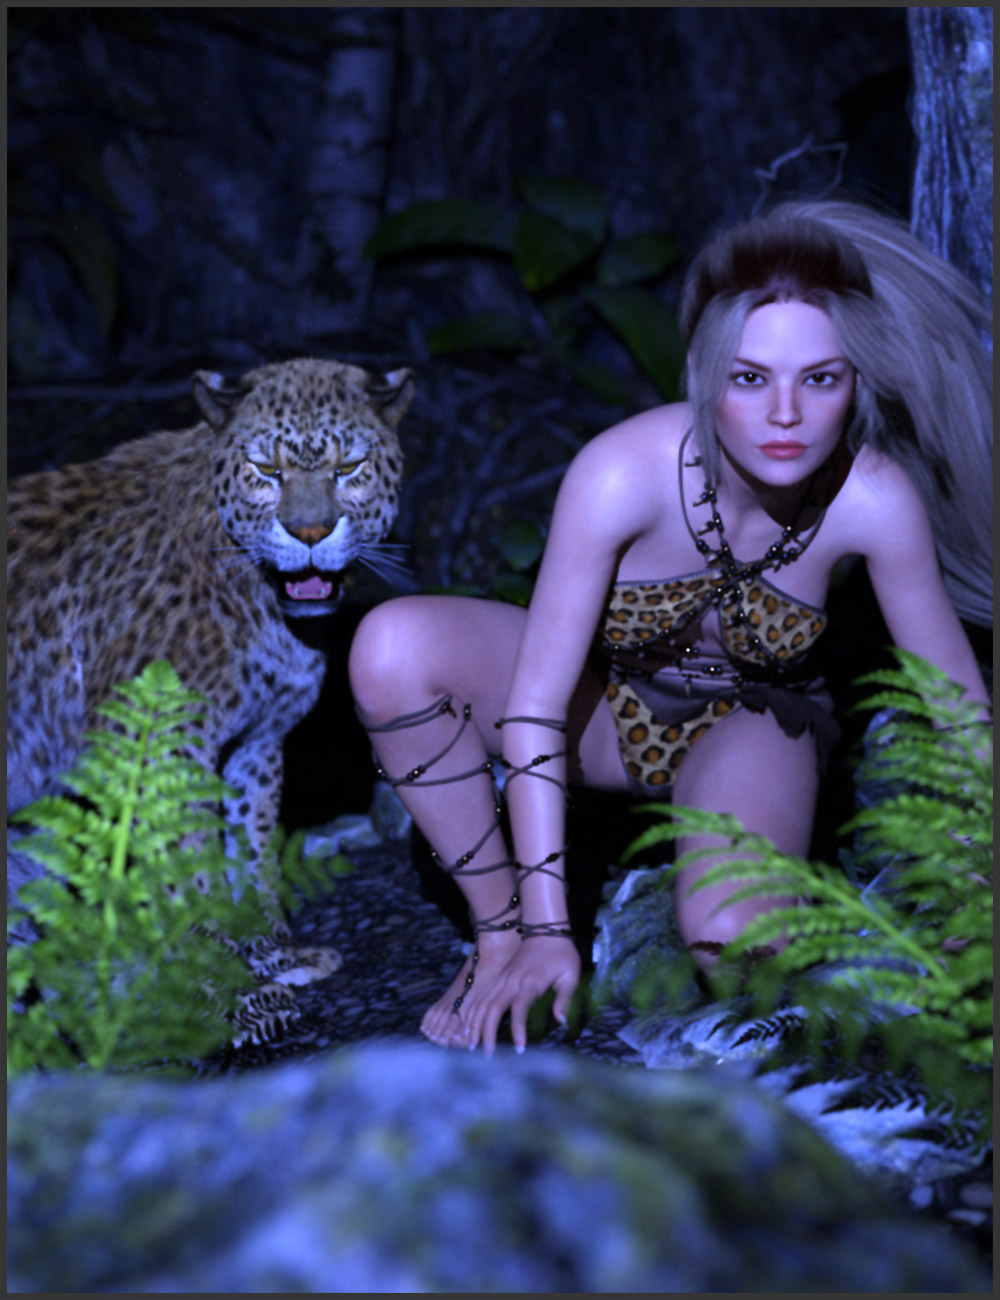 Primal Thunder - dForce Primal Scream Outfit Textures by: ARTCollaborations, 3D Models by Daz 3D